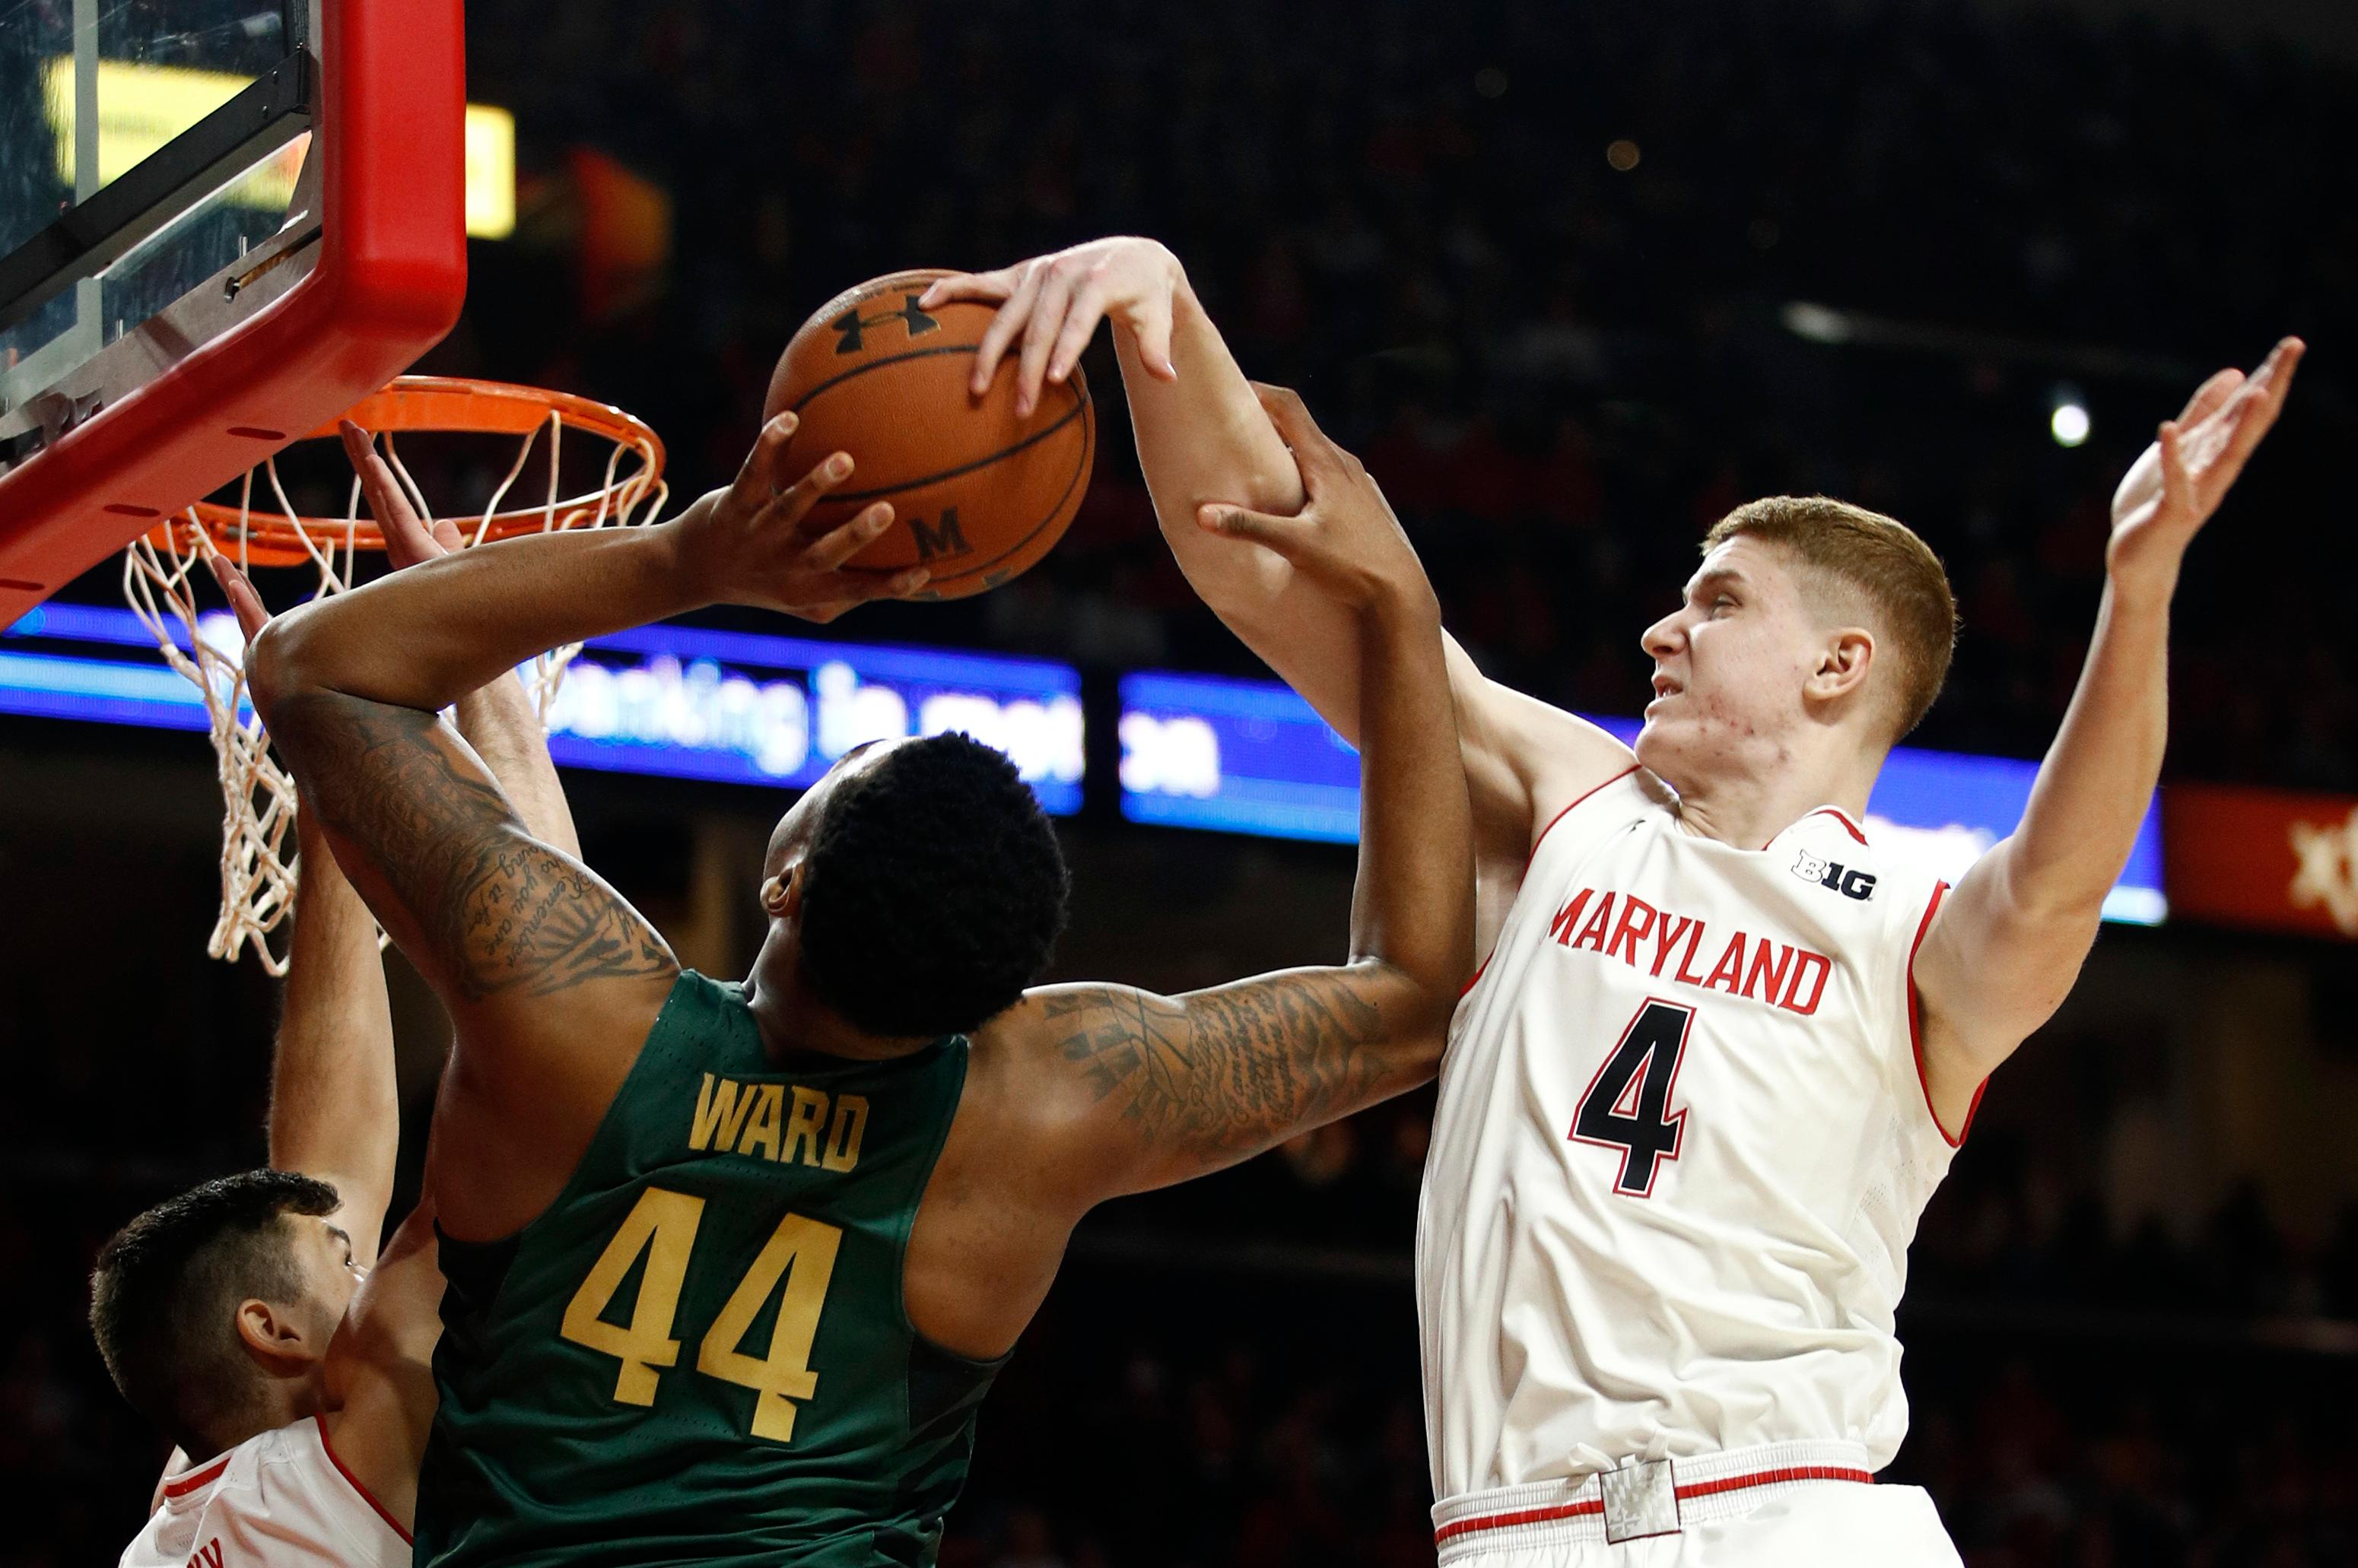 Maryland guard Kevin Huerter, right, tries to block a shot-attempt by Michigan State forward Nick Ward in the first half of an NCAA college basketball game in College Park, Md., Sunday, Jan. 28, 2018. (AP Photo/Patrick Semansky)